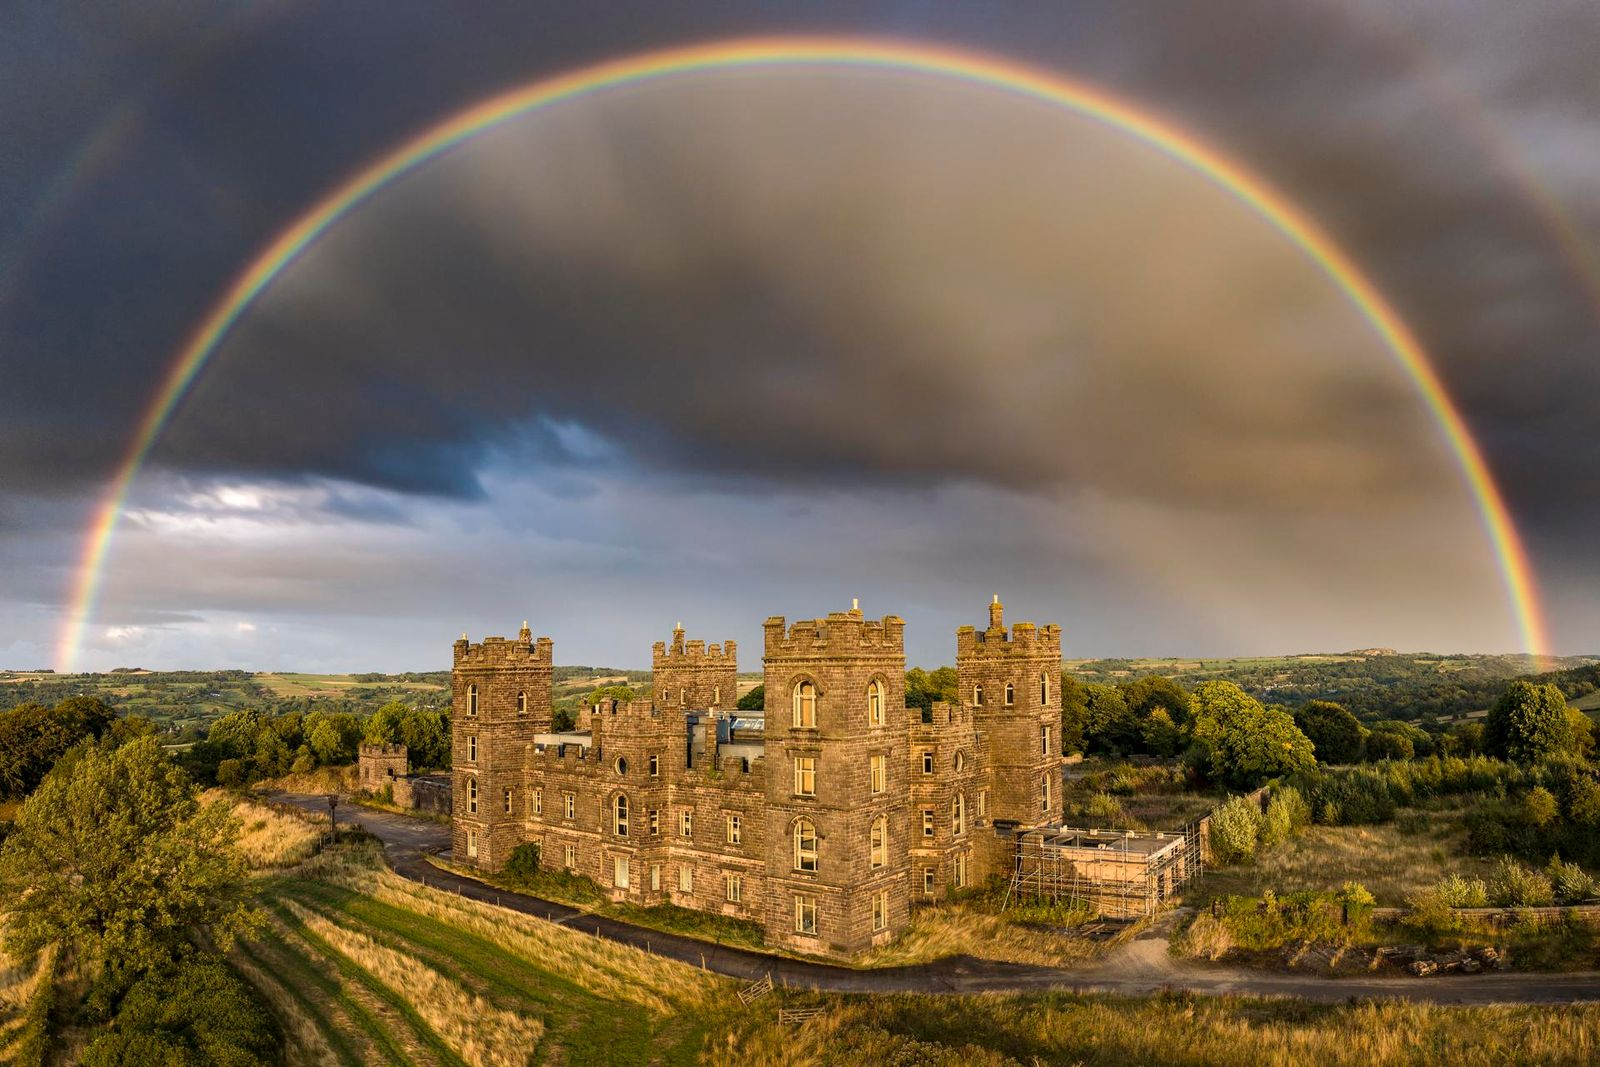 Rainbow Over Riber Castle